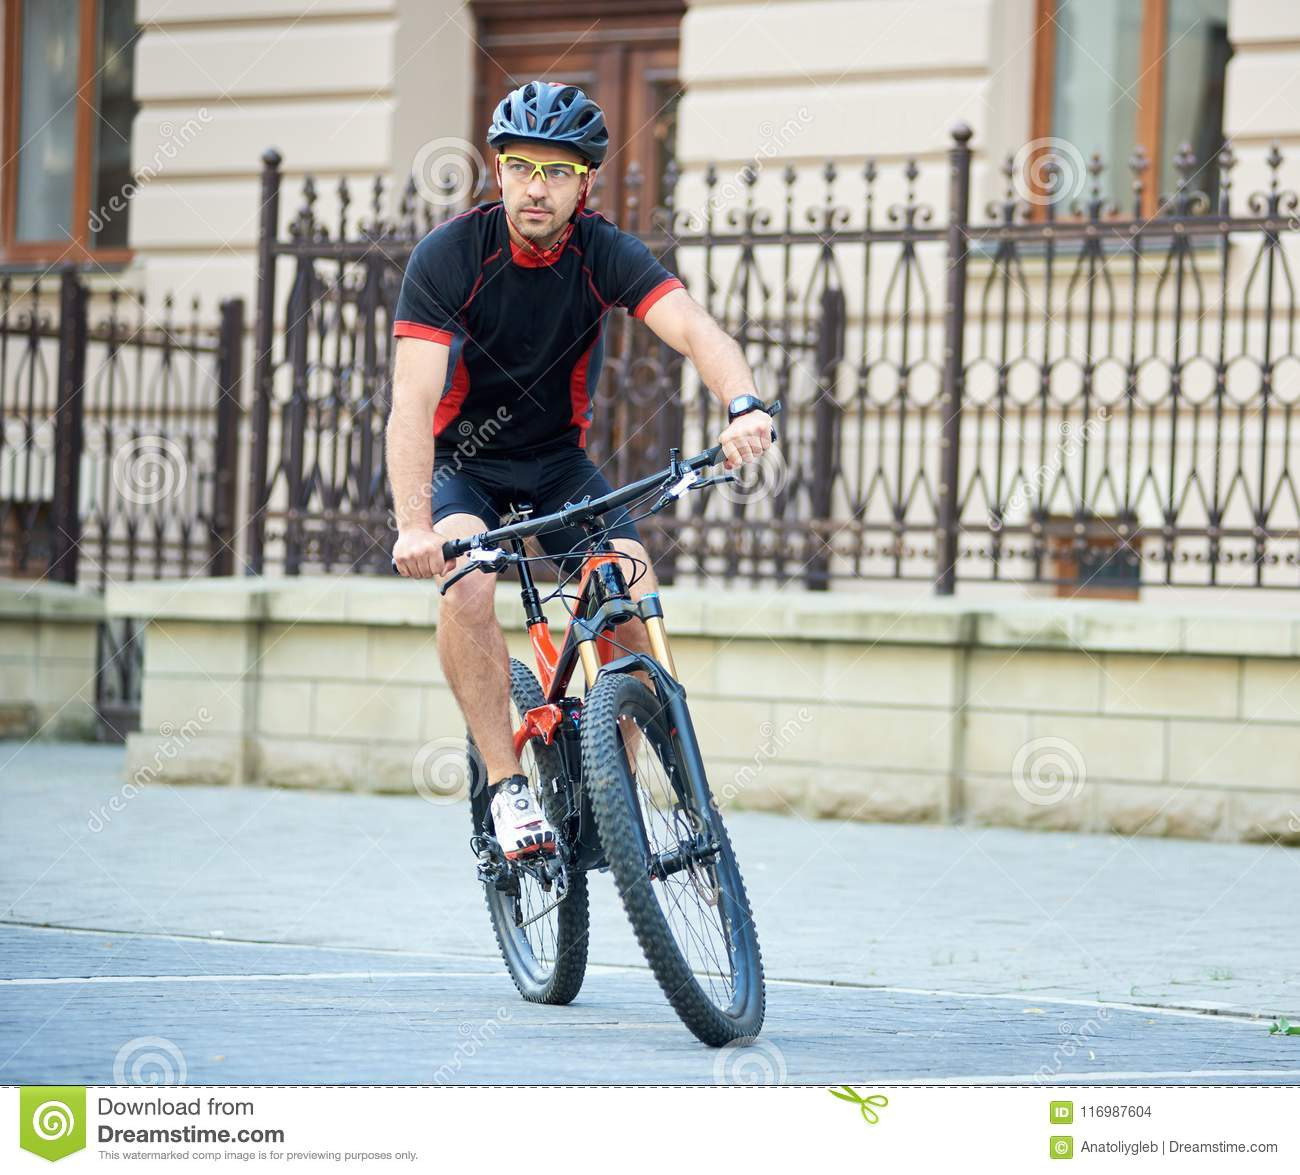 Sportsman Riding Bike Next To Old Building Stock Photo - Image of ... f803f90a1